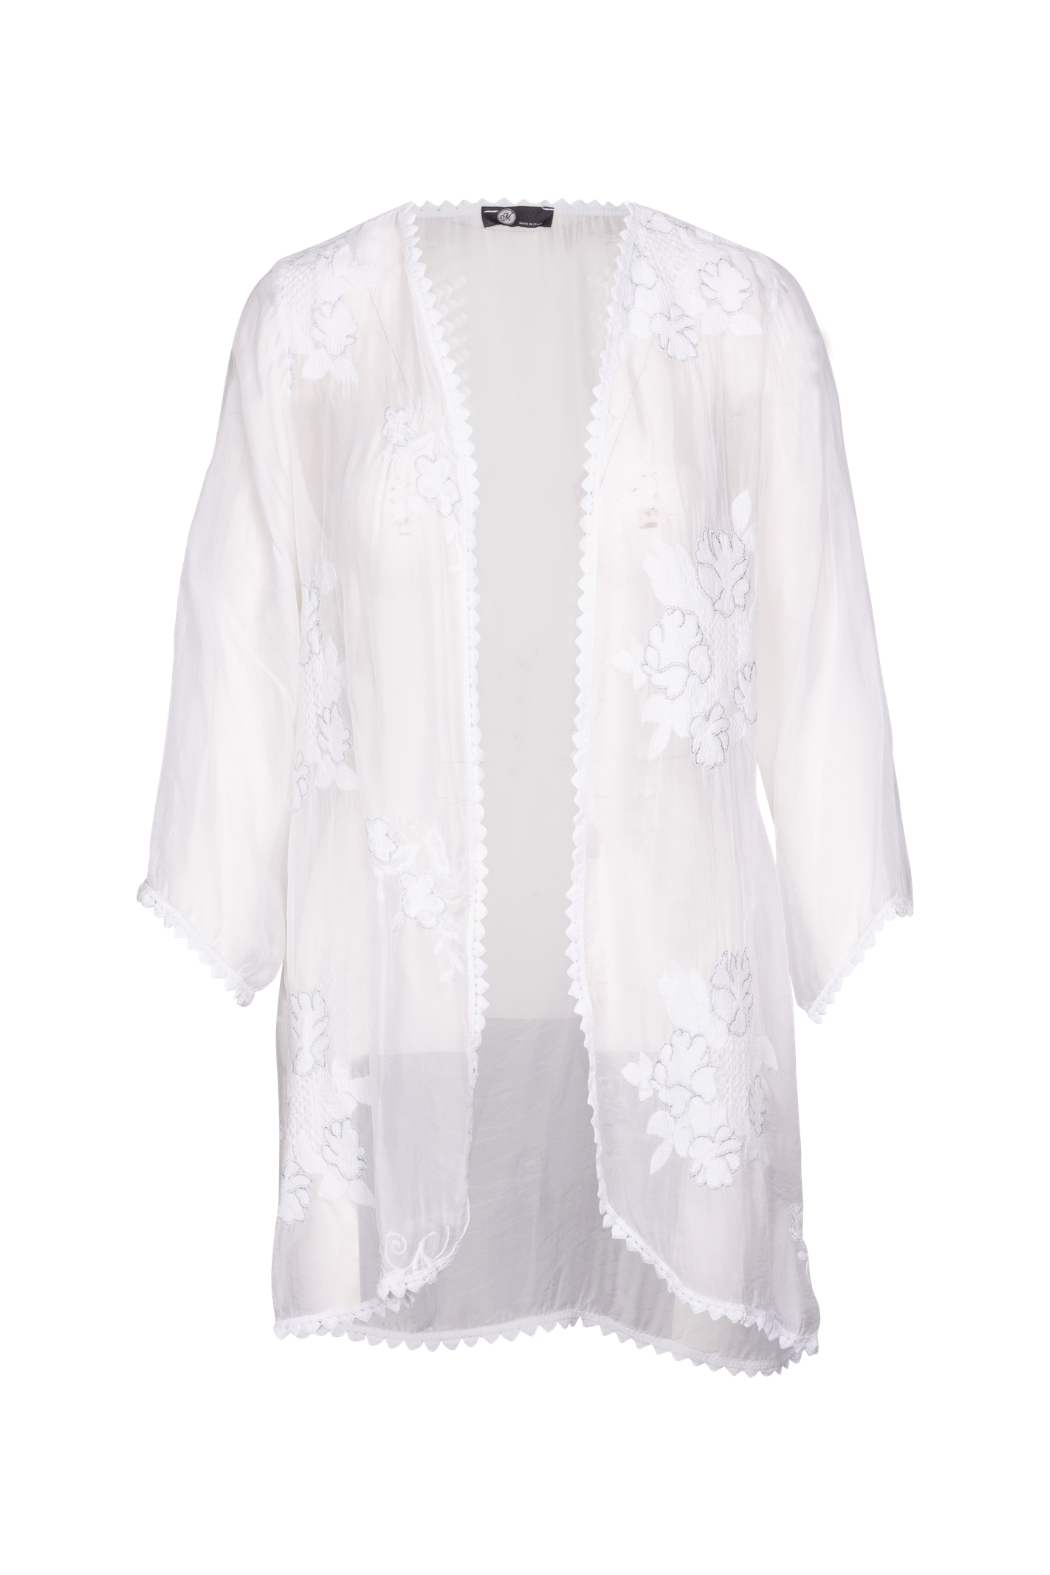 M made in Italy Floral Embroidered Cardi with Trim - Main Image